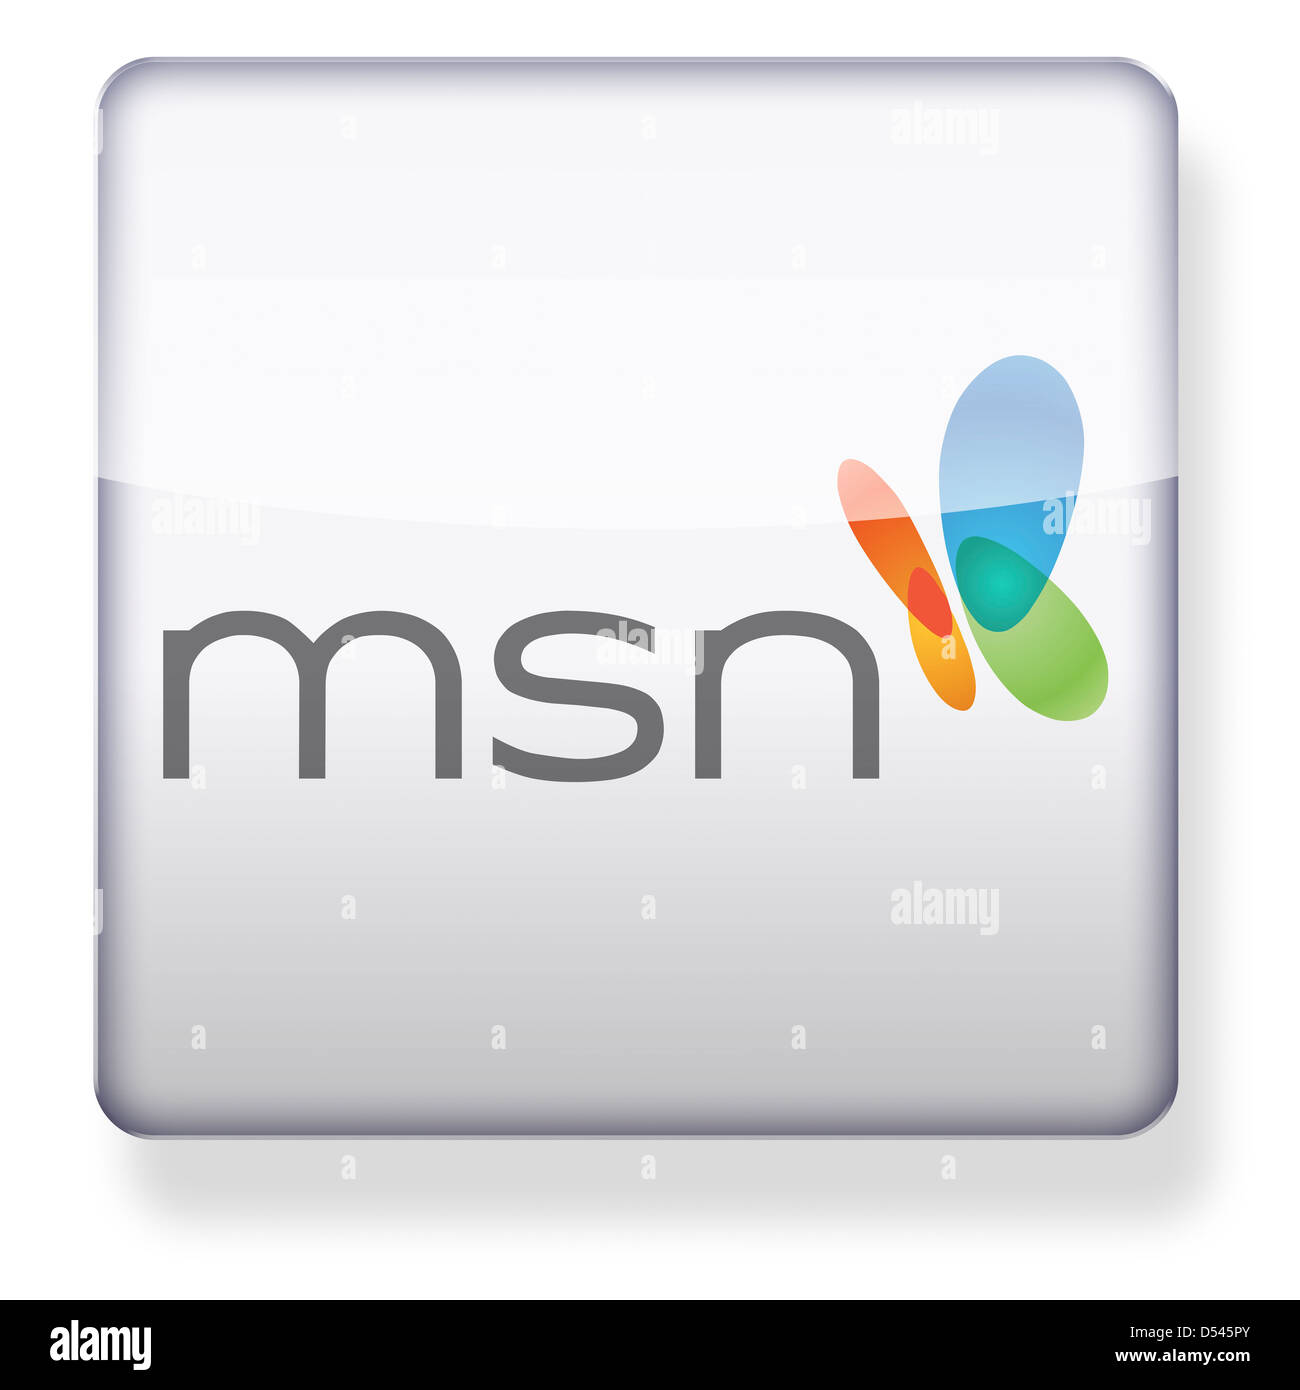 msn logo as an app icon clipping path included stock photo